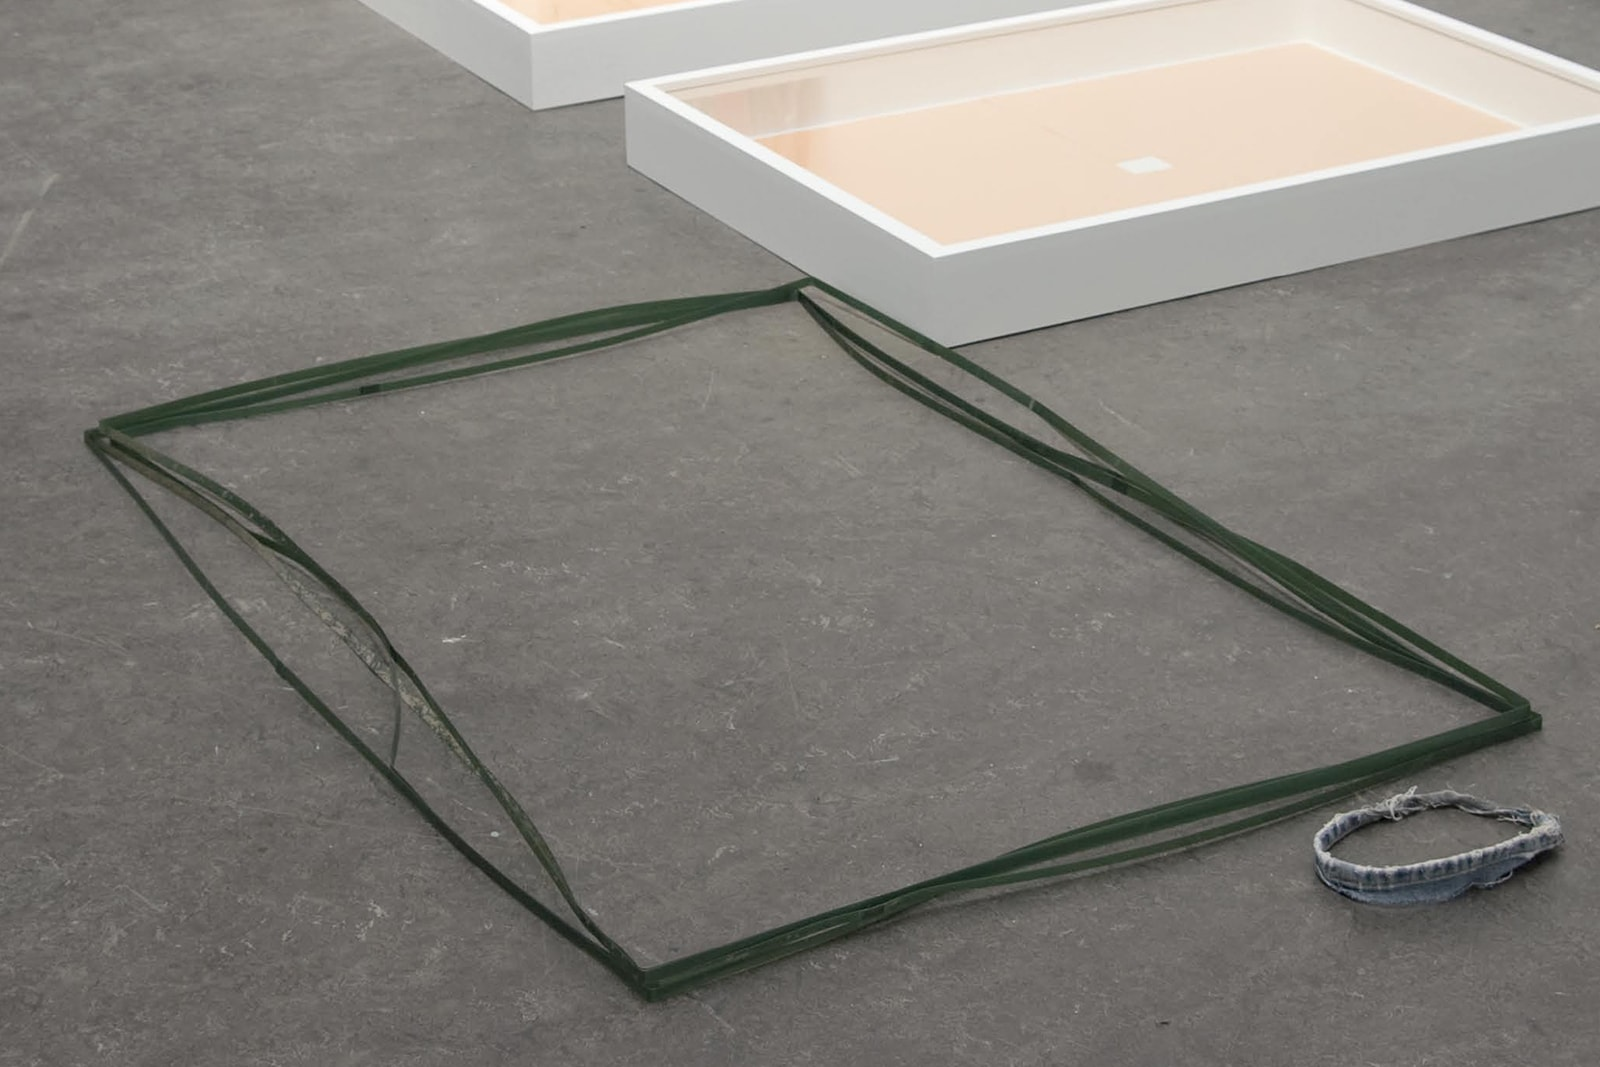 126 × 84 × 80, gerlach en koop, 2011, strap wire from a pallet of paving stones